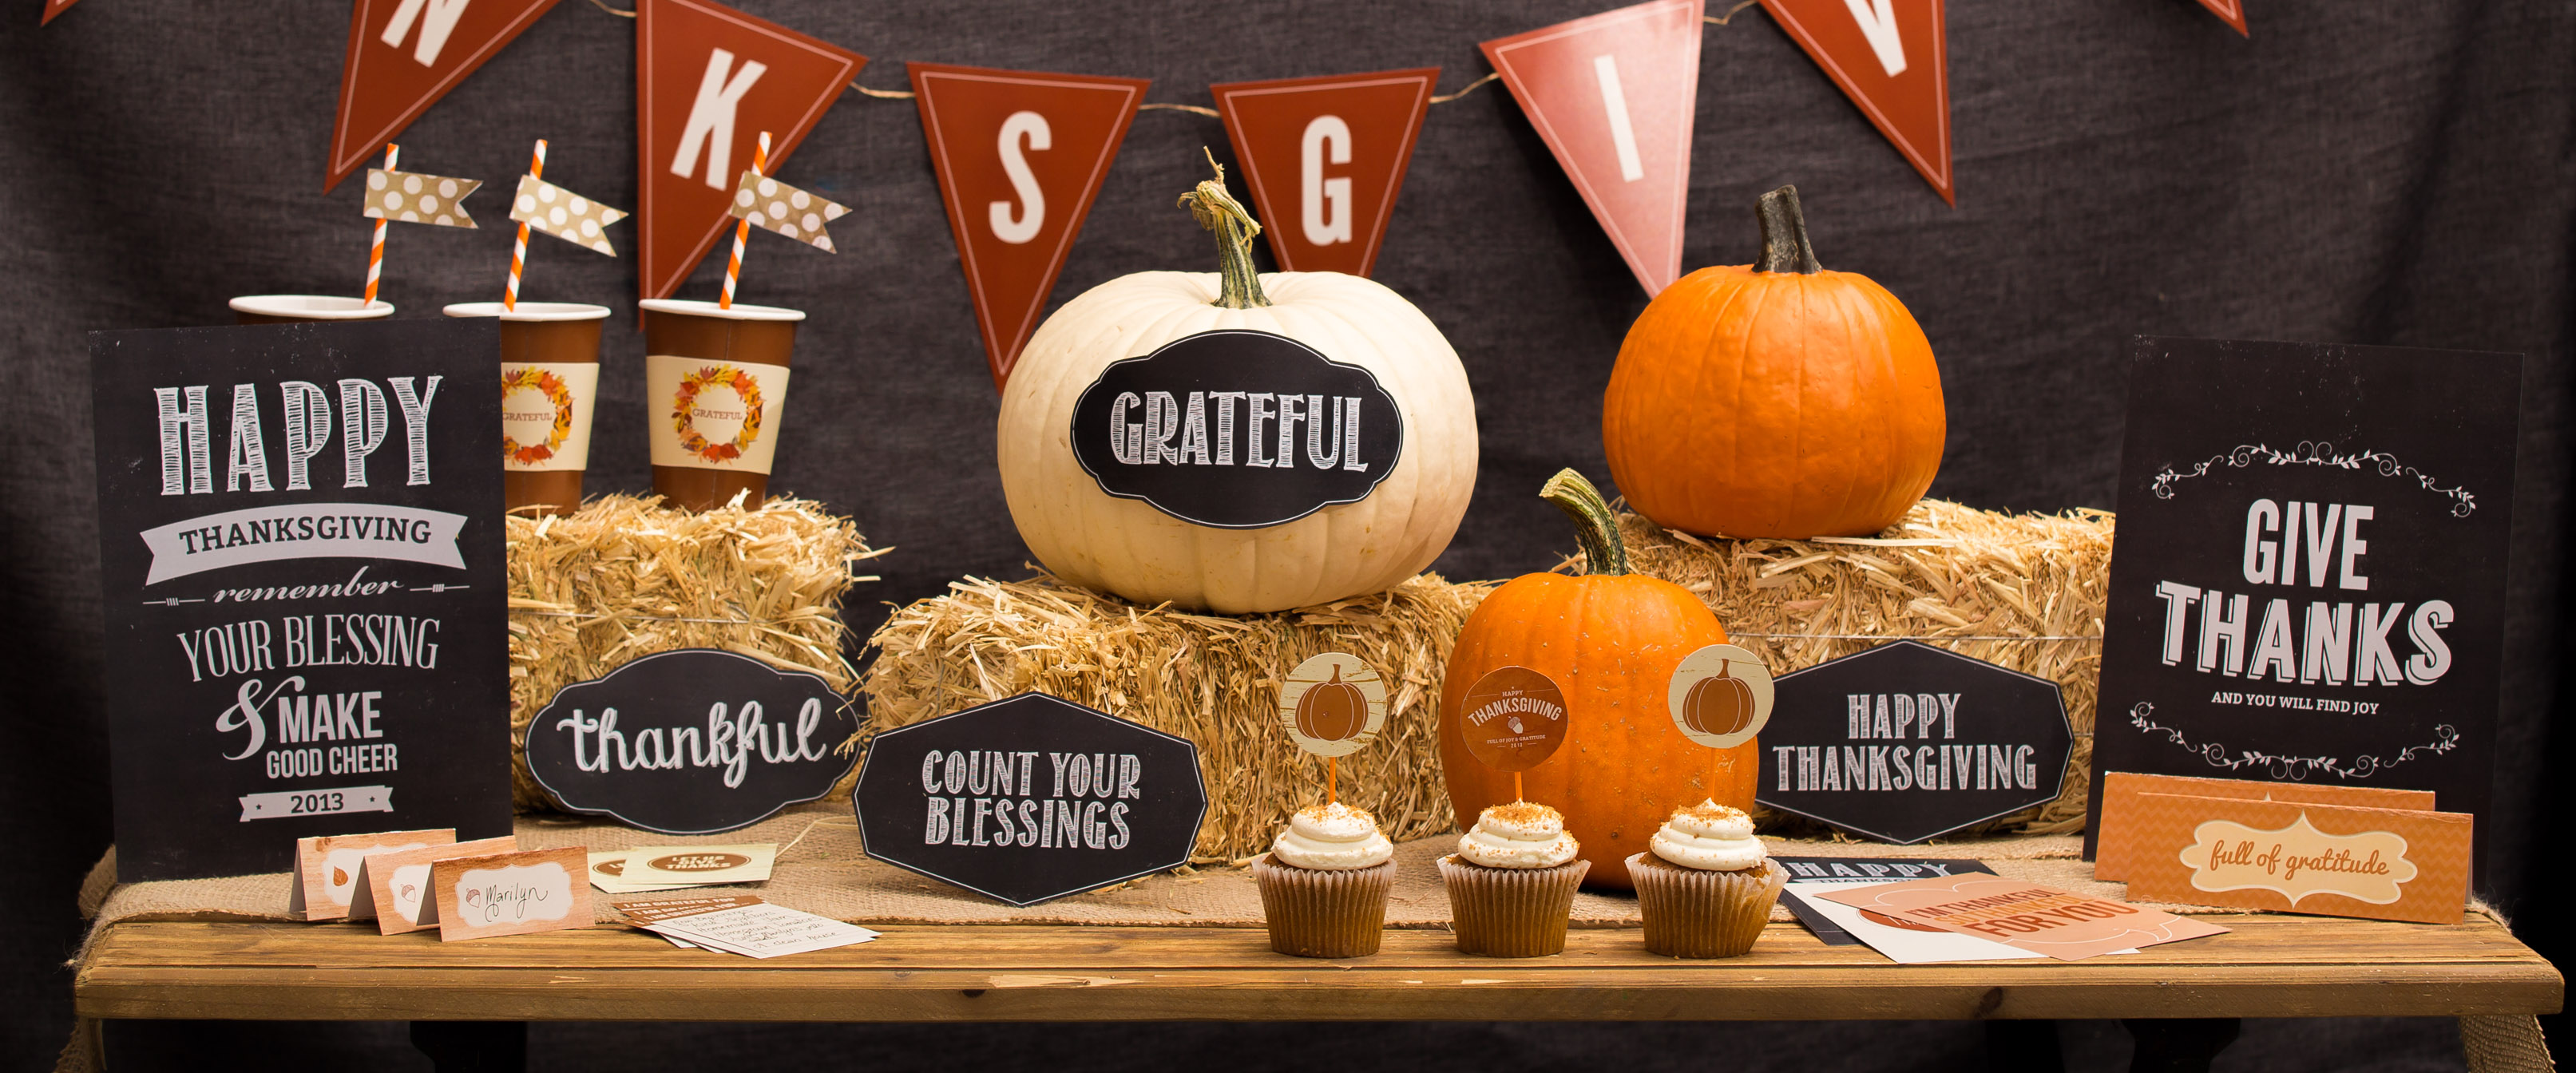 Screen Scratch Wallpaper Hd Thanksgiving Great Time To Enjoy Time With Friends And